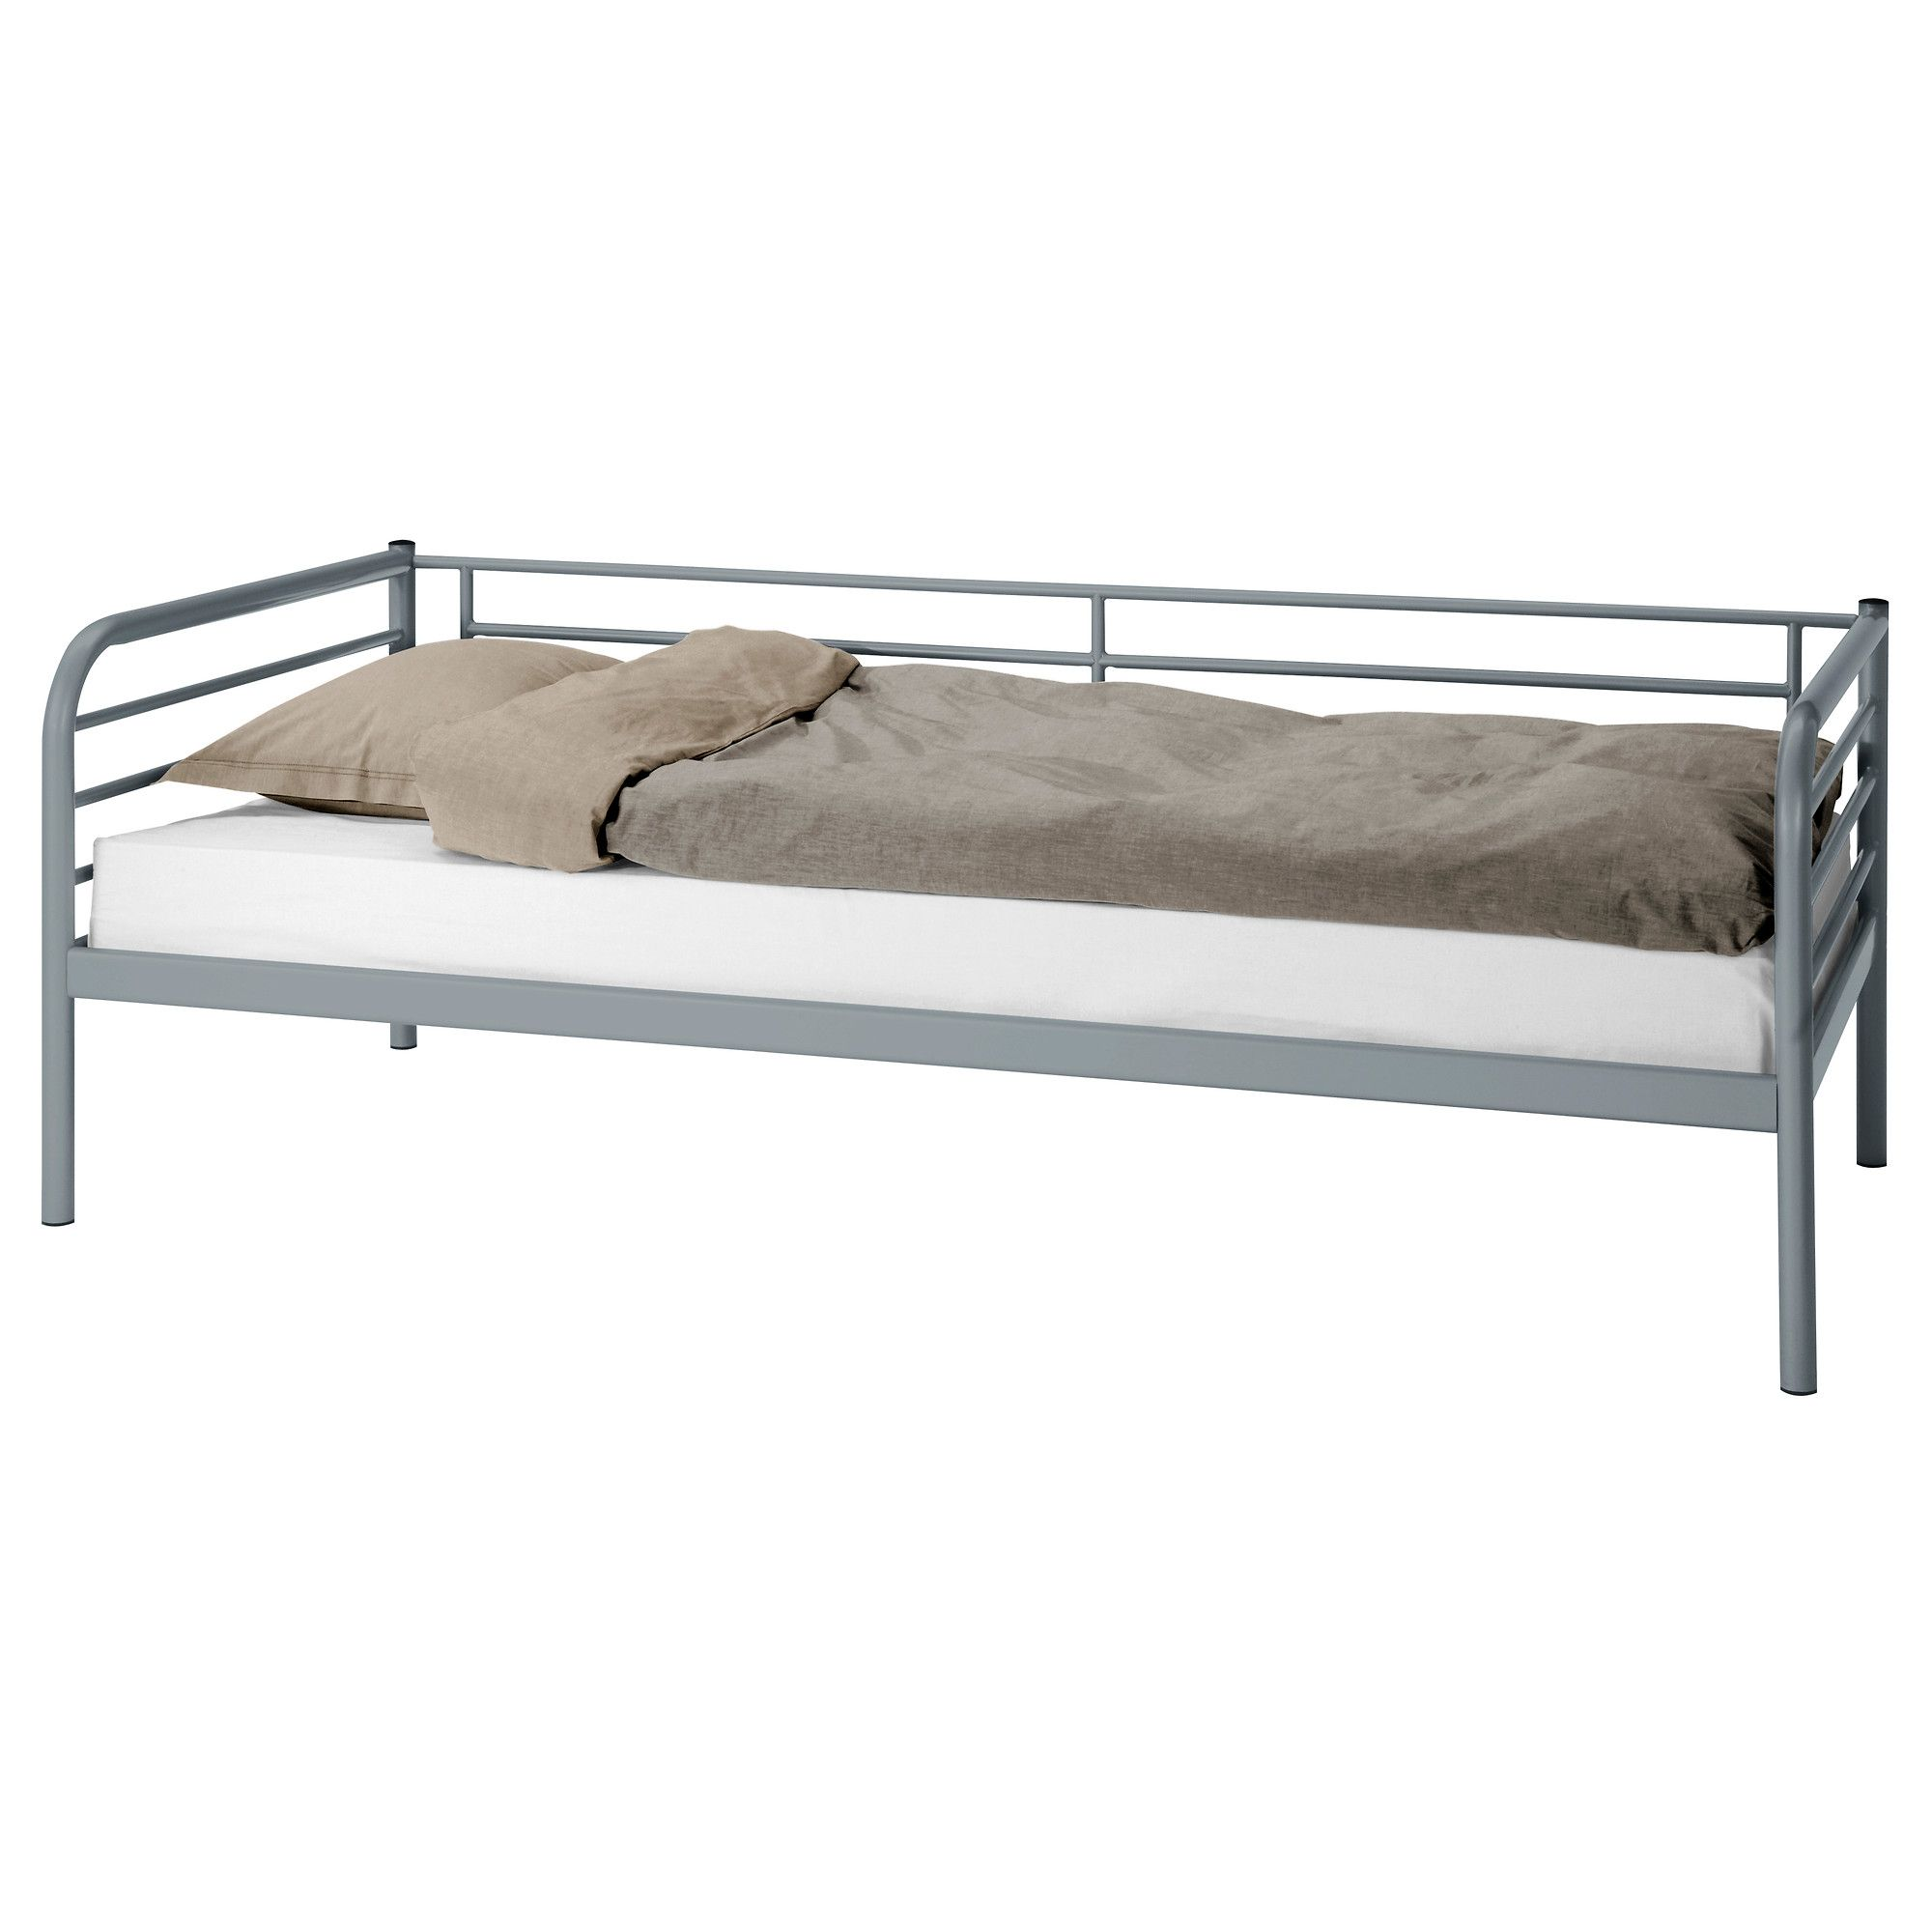 Ikea Us Furniture And Home Furnishings Ikea Bed Day Bed Frame